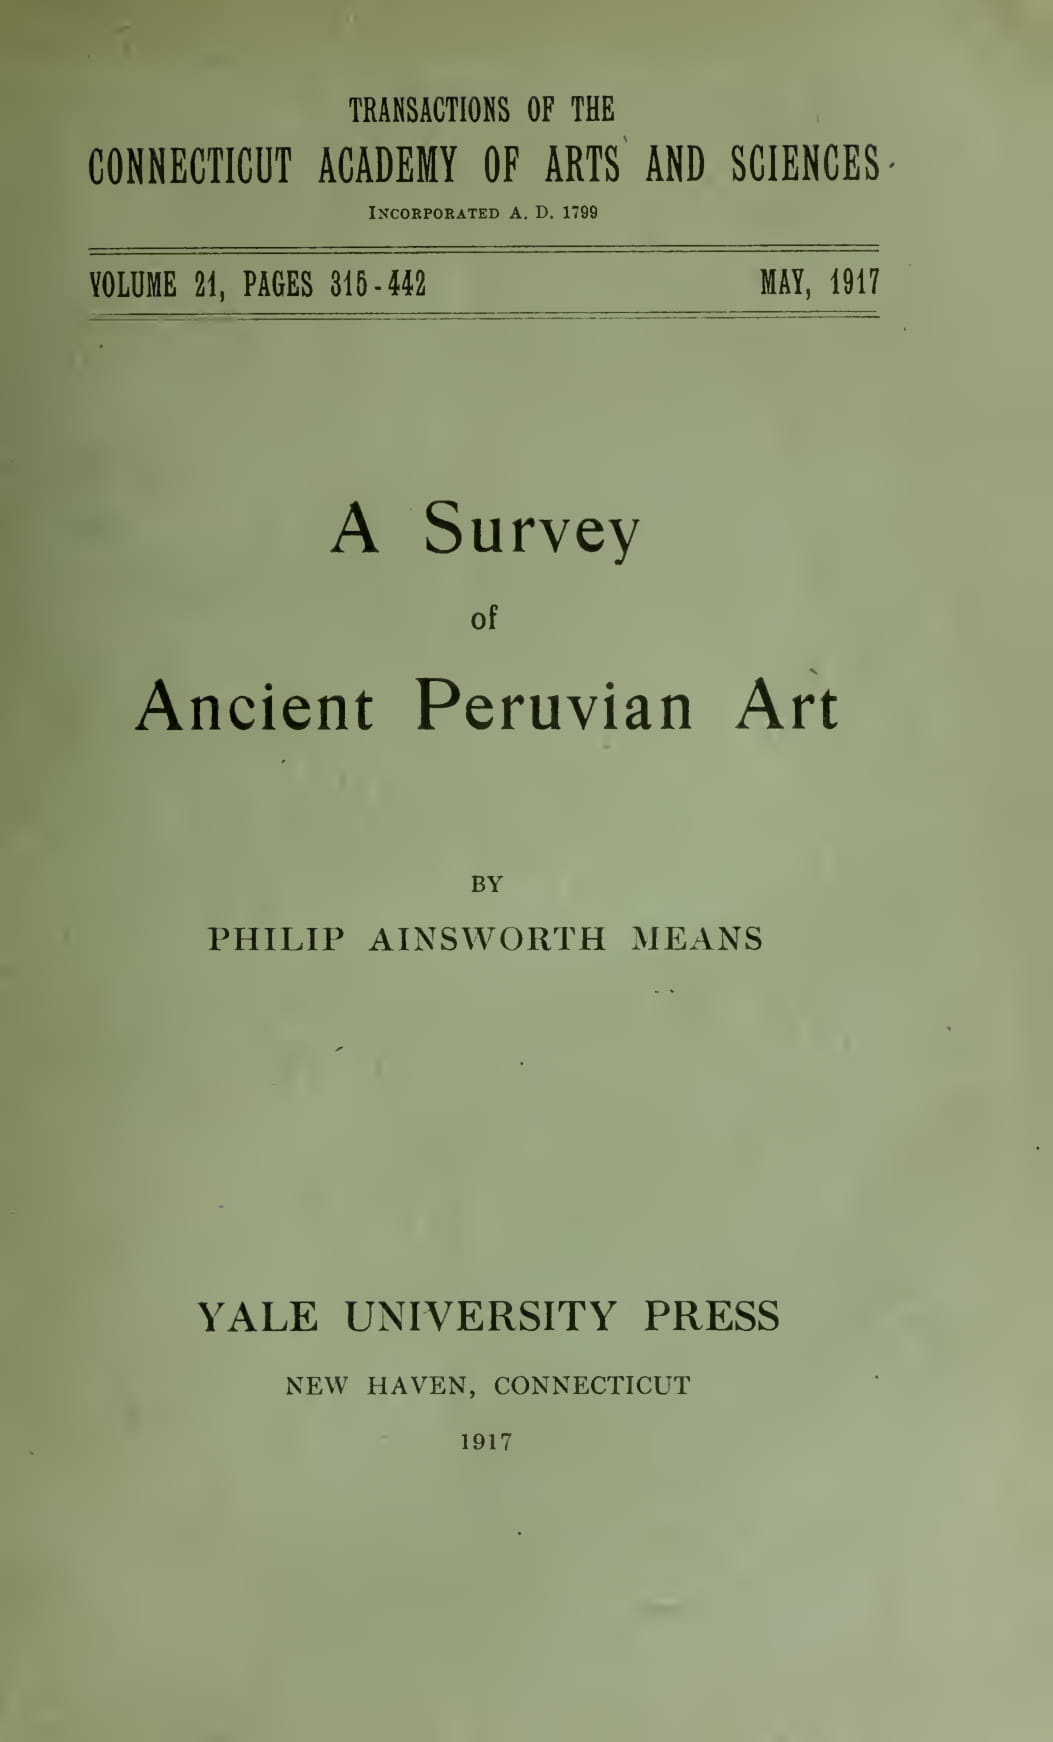 English - A Survey of Ancient Peruvian Art